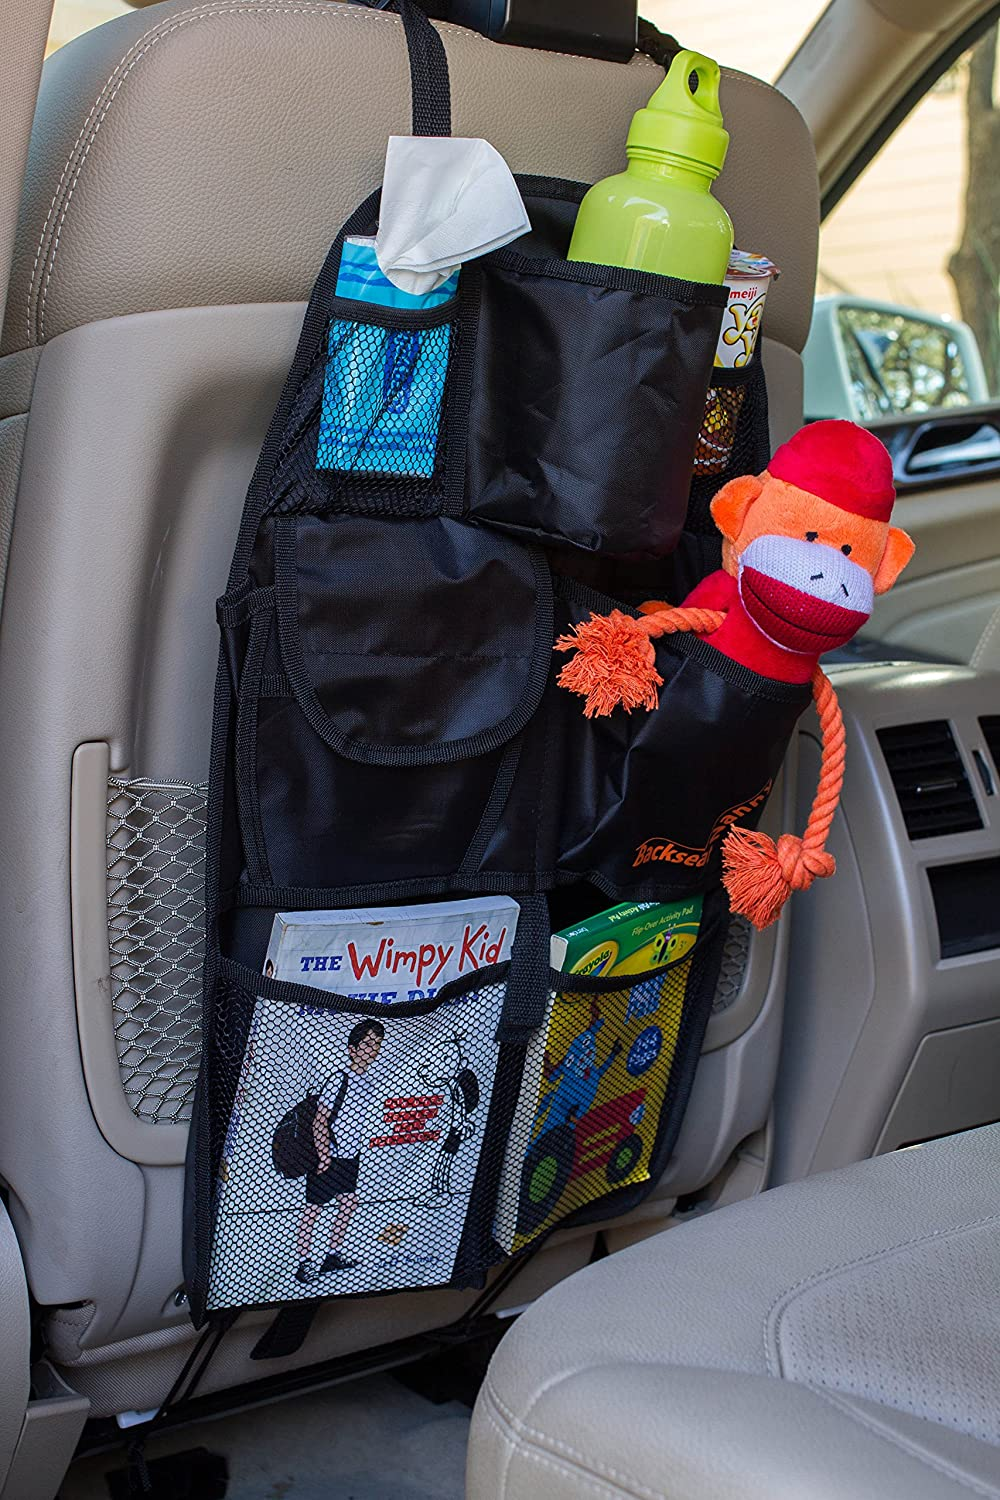 amazoncom back seat car organizer best backseat auto organizer for kids and baby contains pockets for toy storage and is great for travel and pet